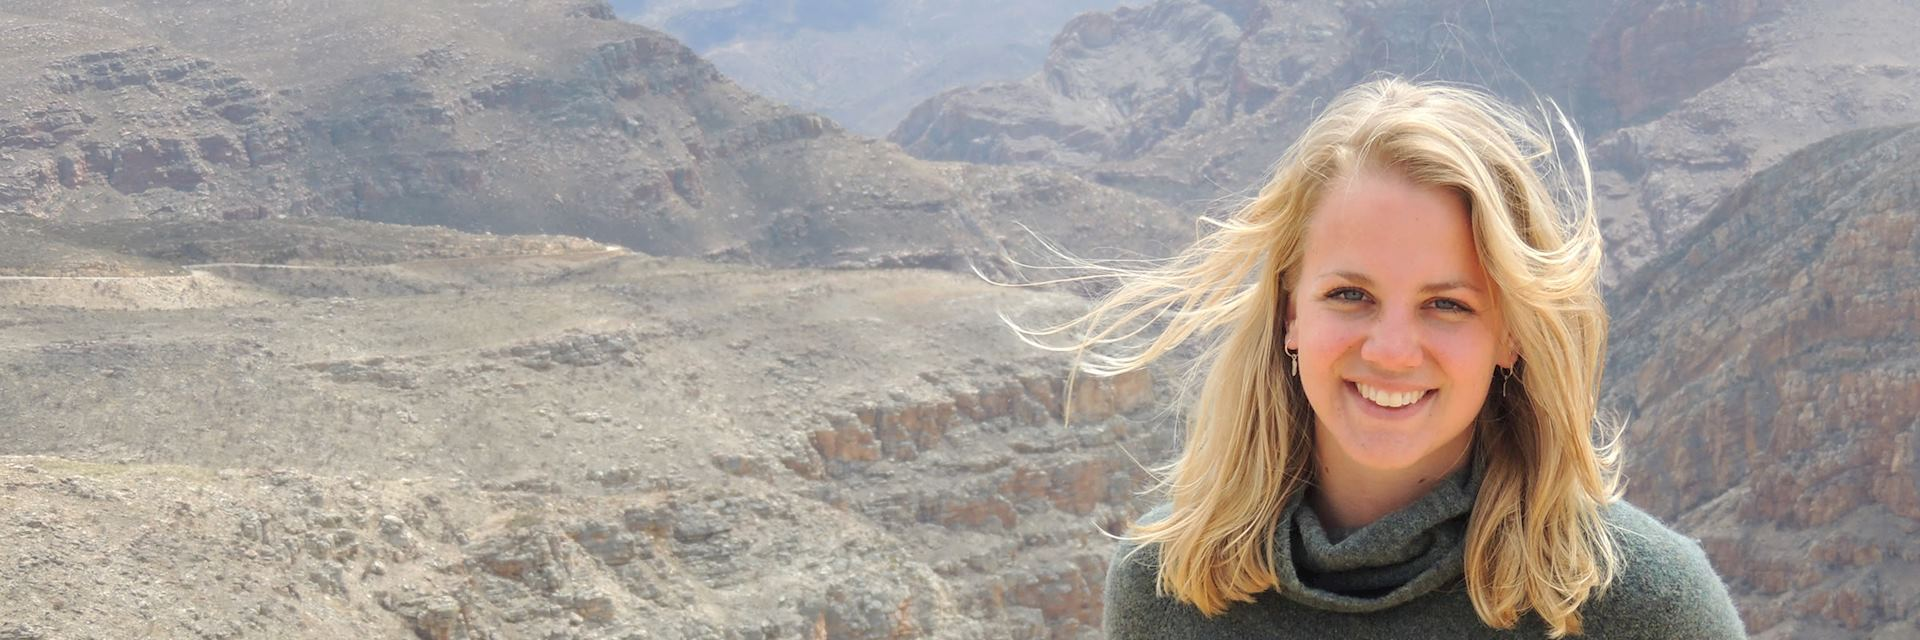 Amelia in the Swartberg Mountains, South Africa